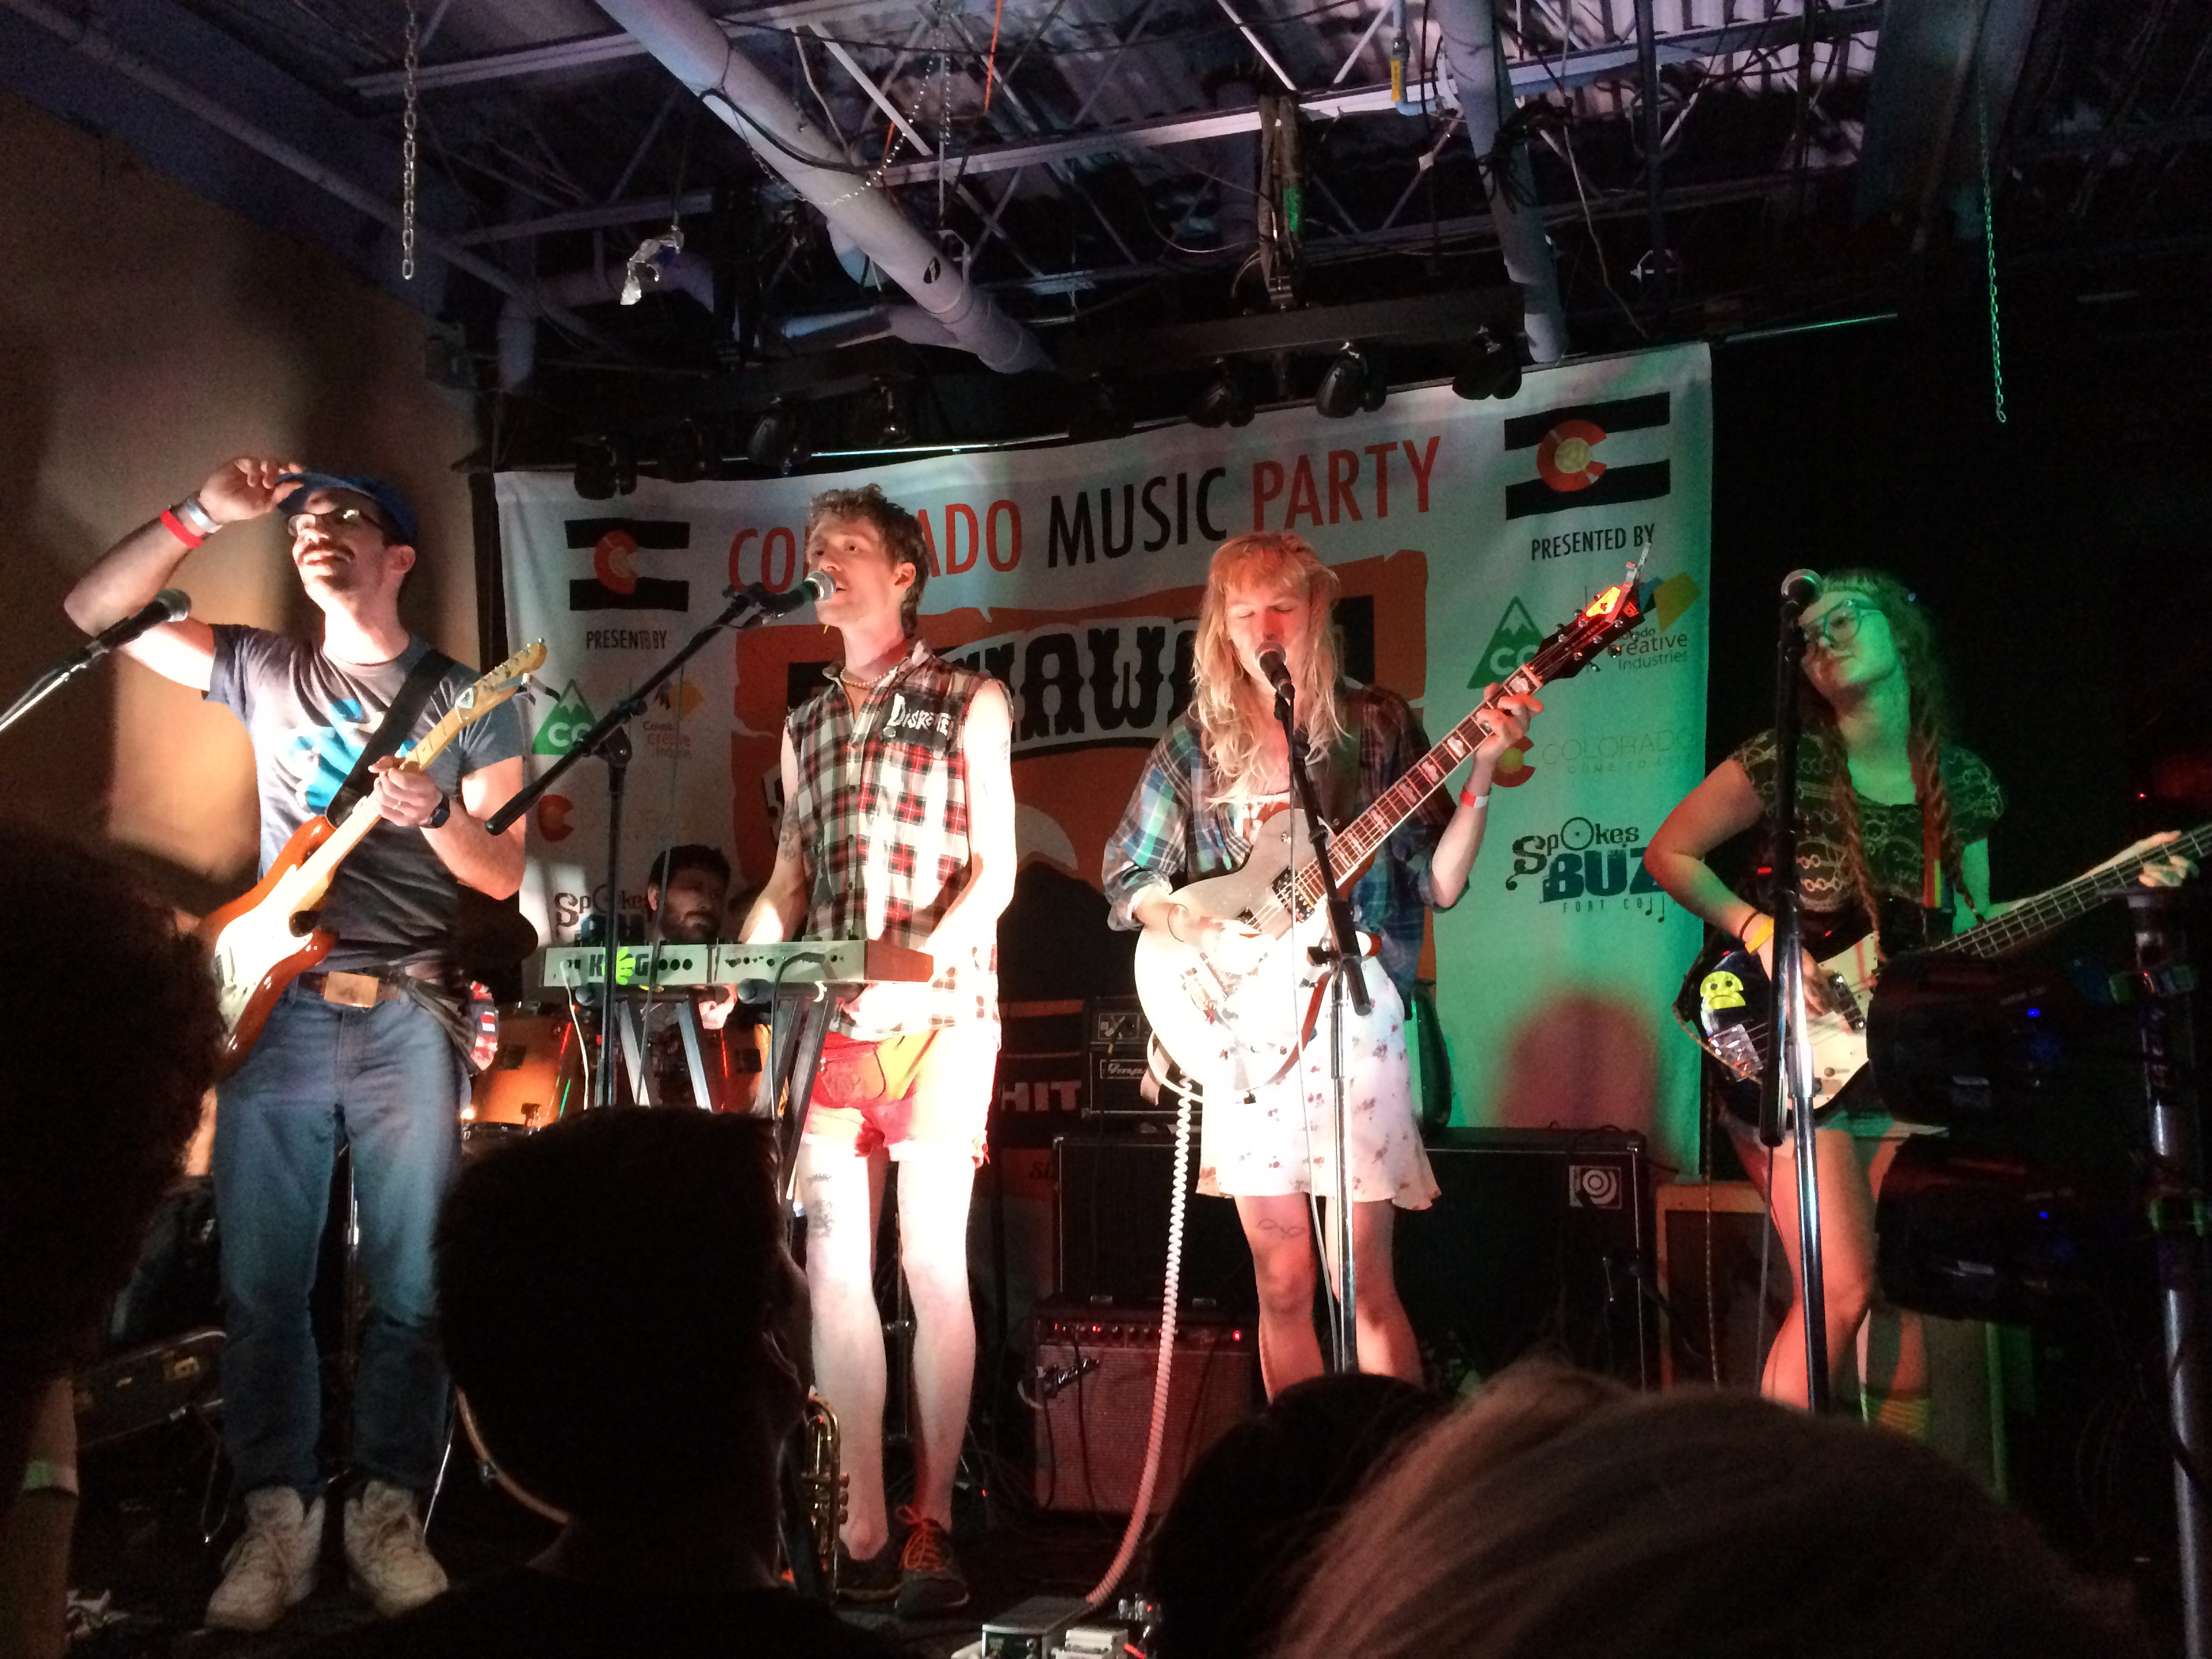 Photo: Strawberry Runners at Colorado Music Party at SXSW 2015